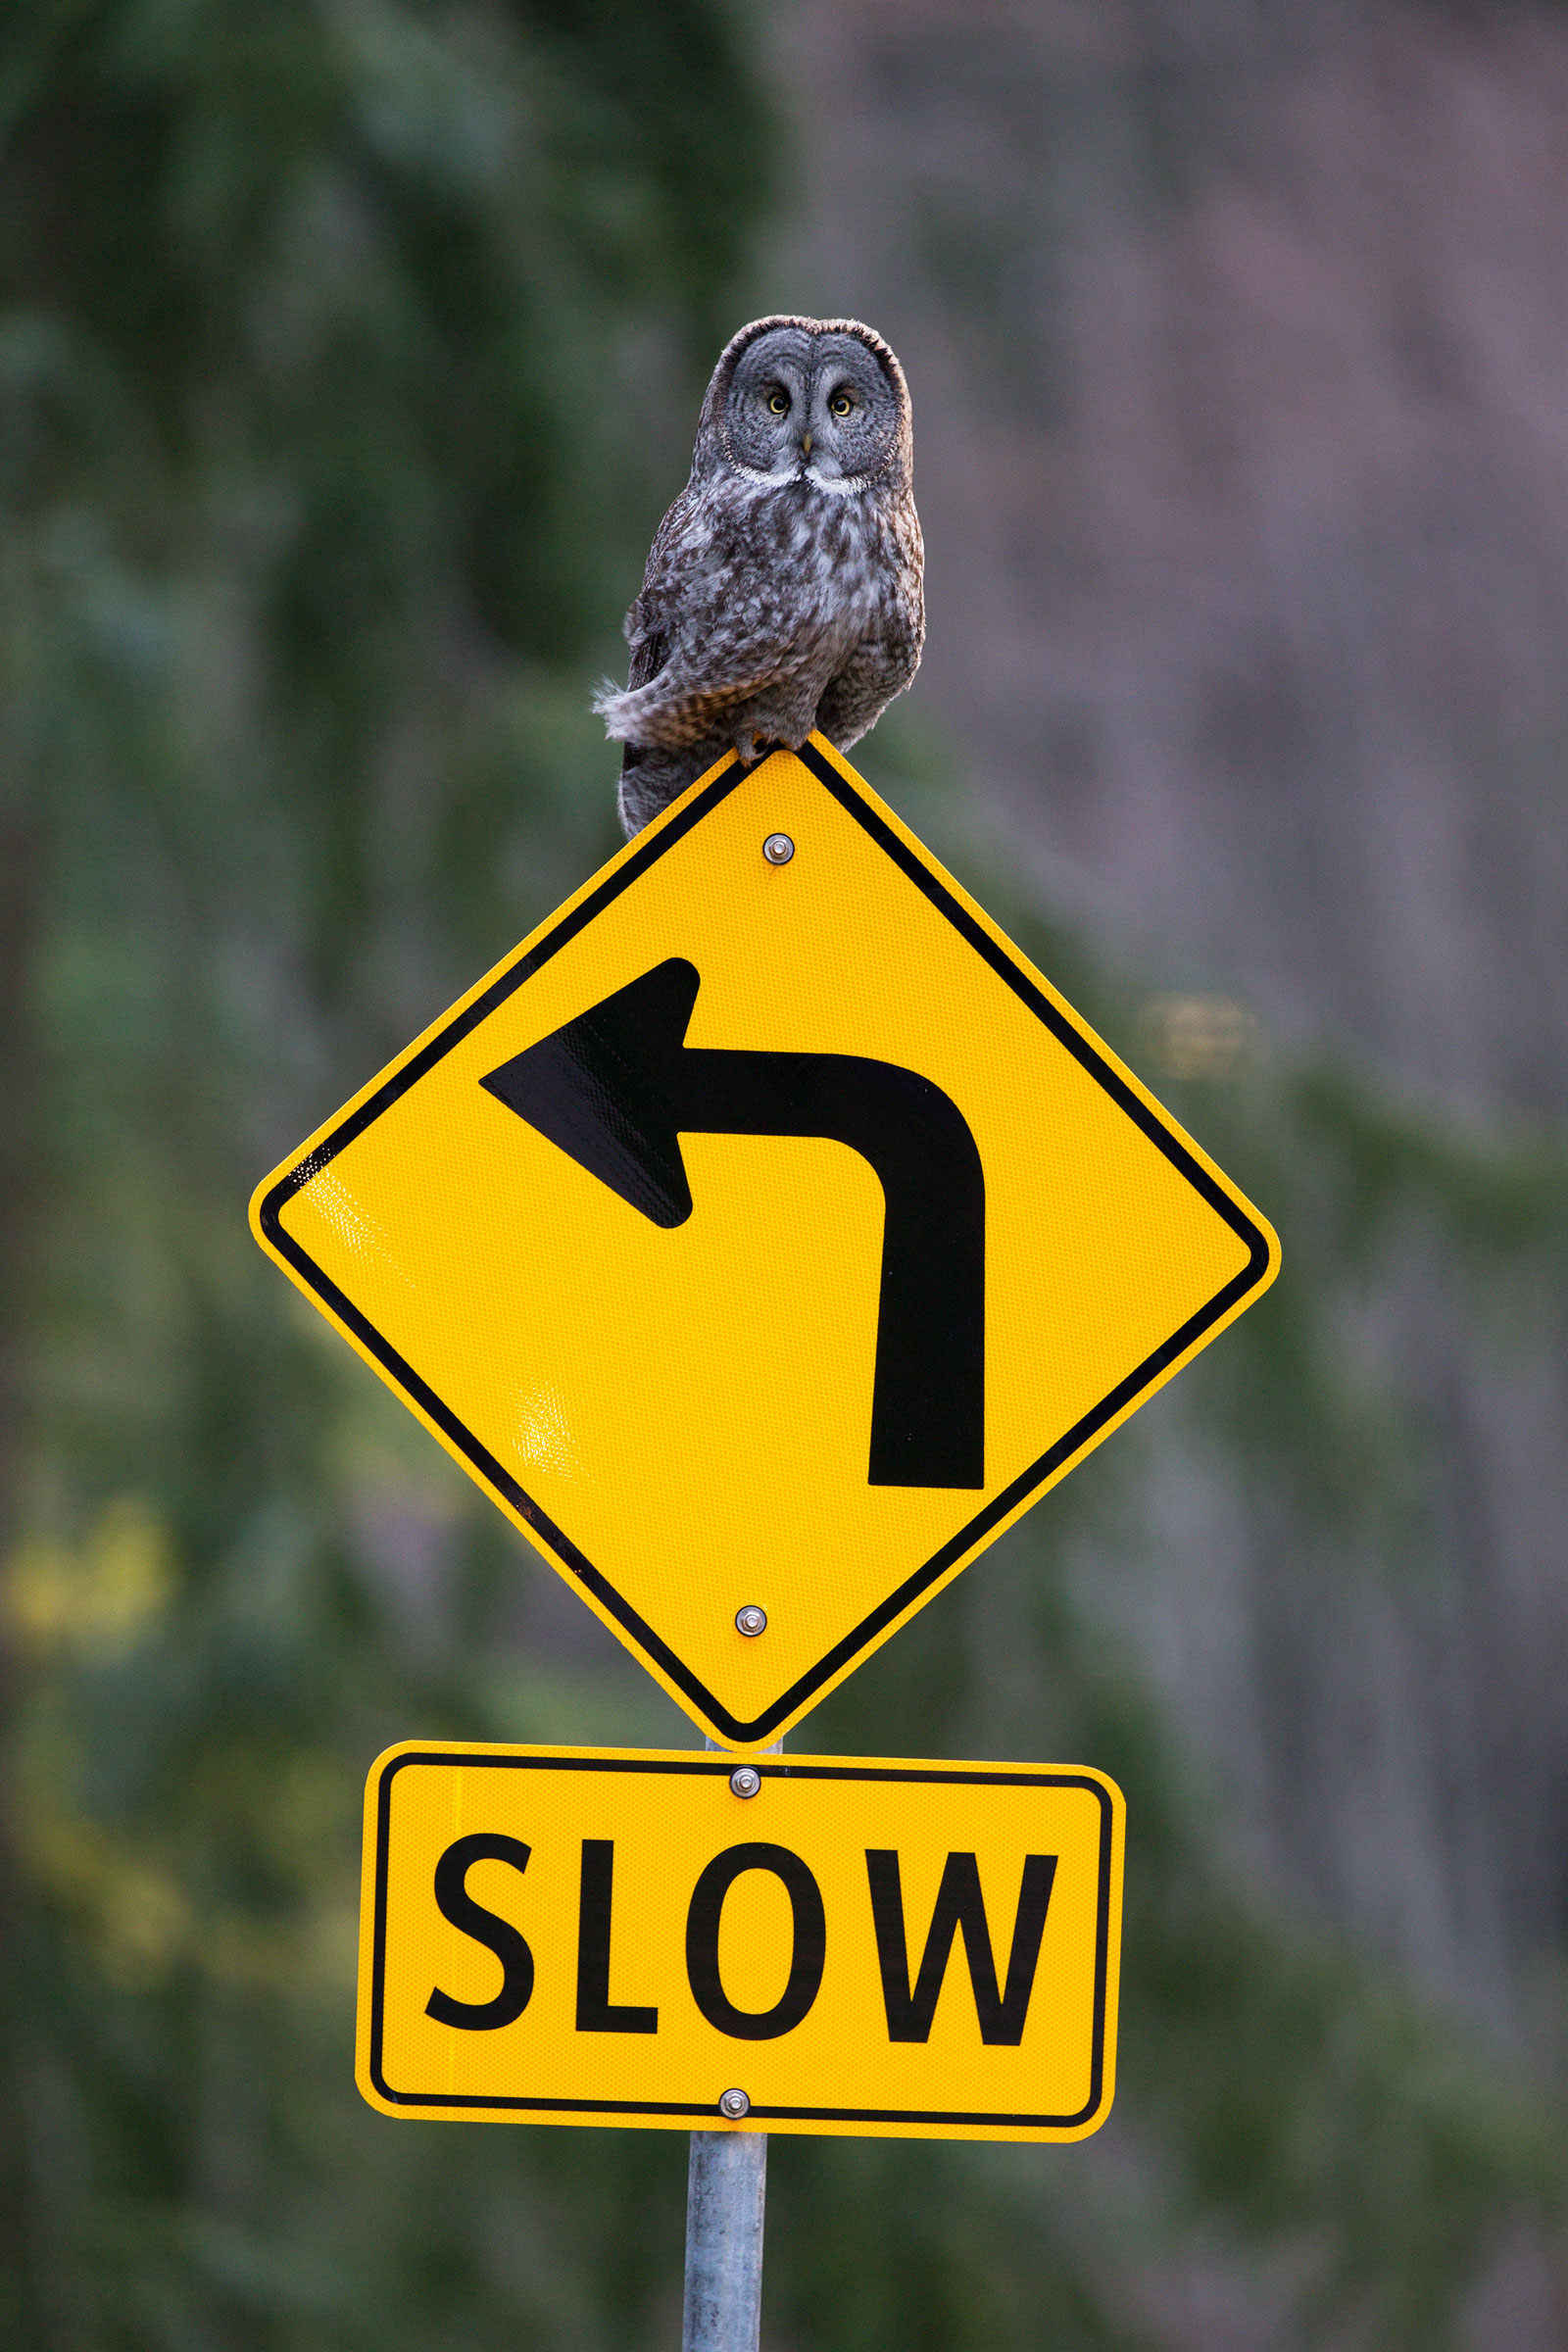 """While trying to get a photo of this Great Gray Owl, the author had her shot blocked by another photographer, a reminder to respect other shooters as well as the birds. <a href=""""http://www.neverspook.com/"""">Roberta Olenick</a>"""